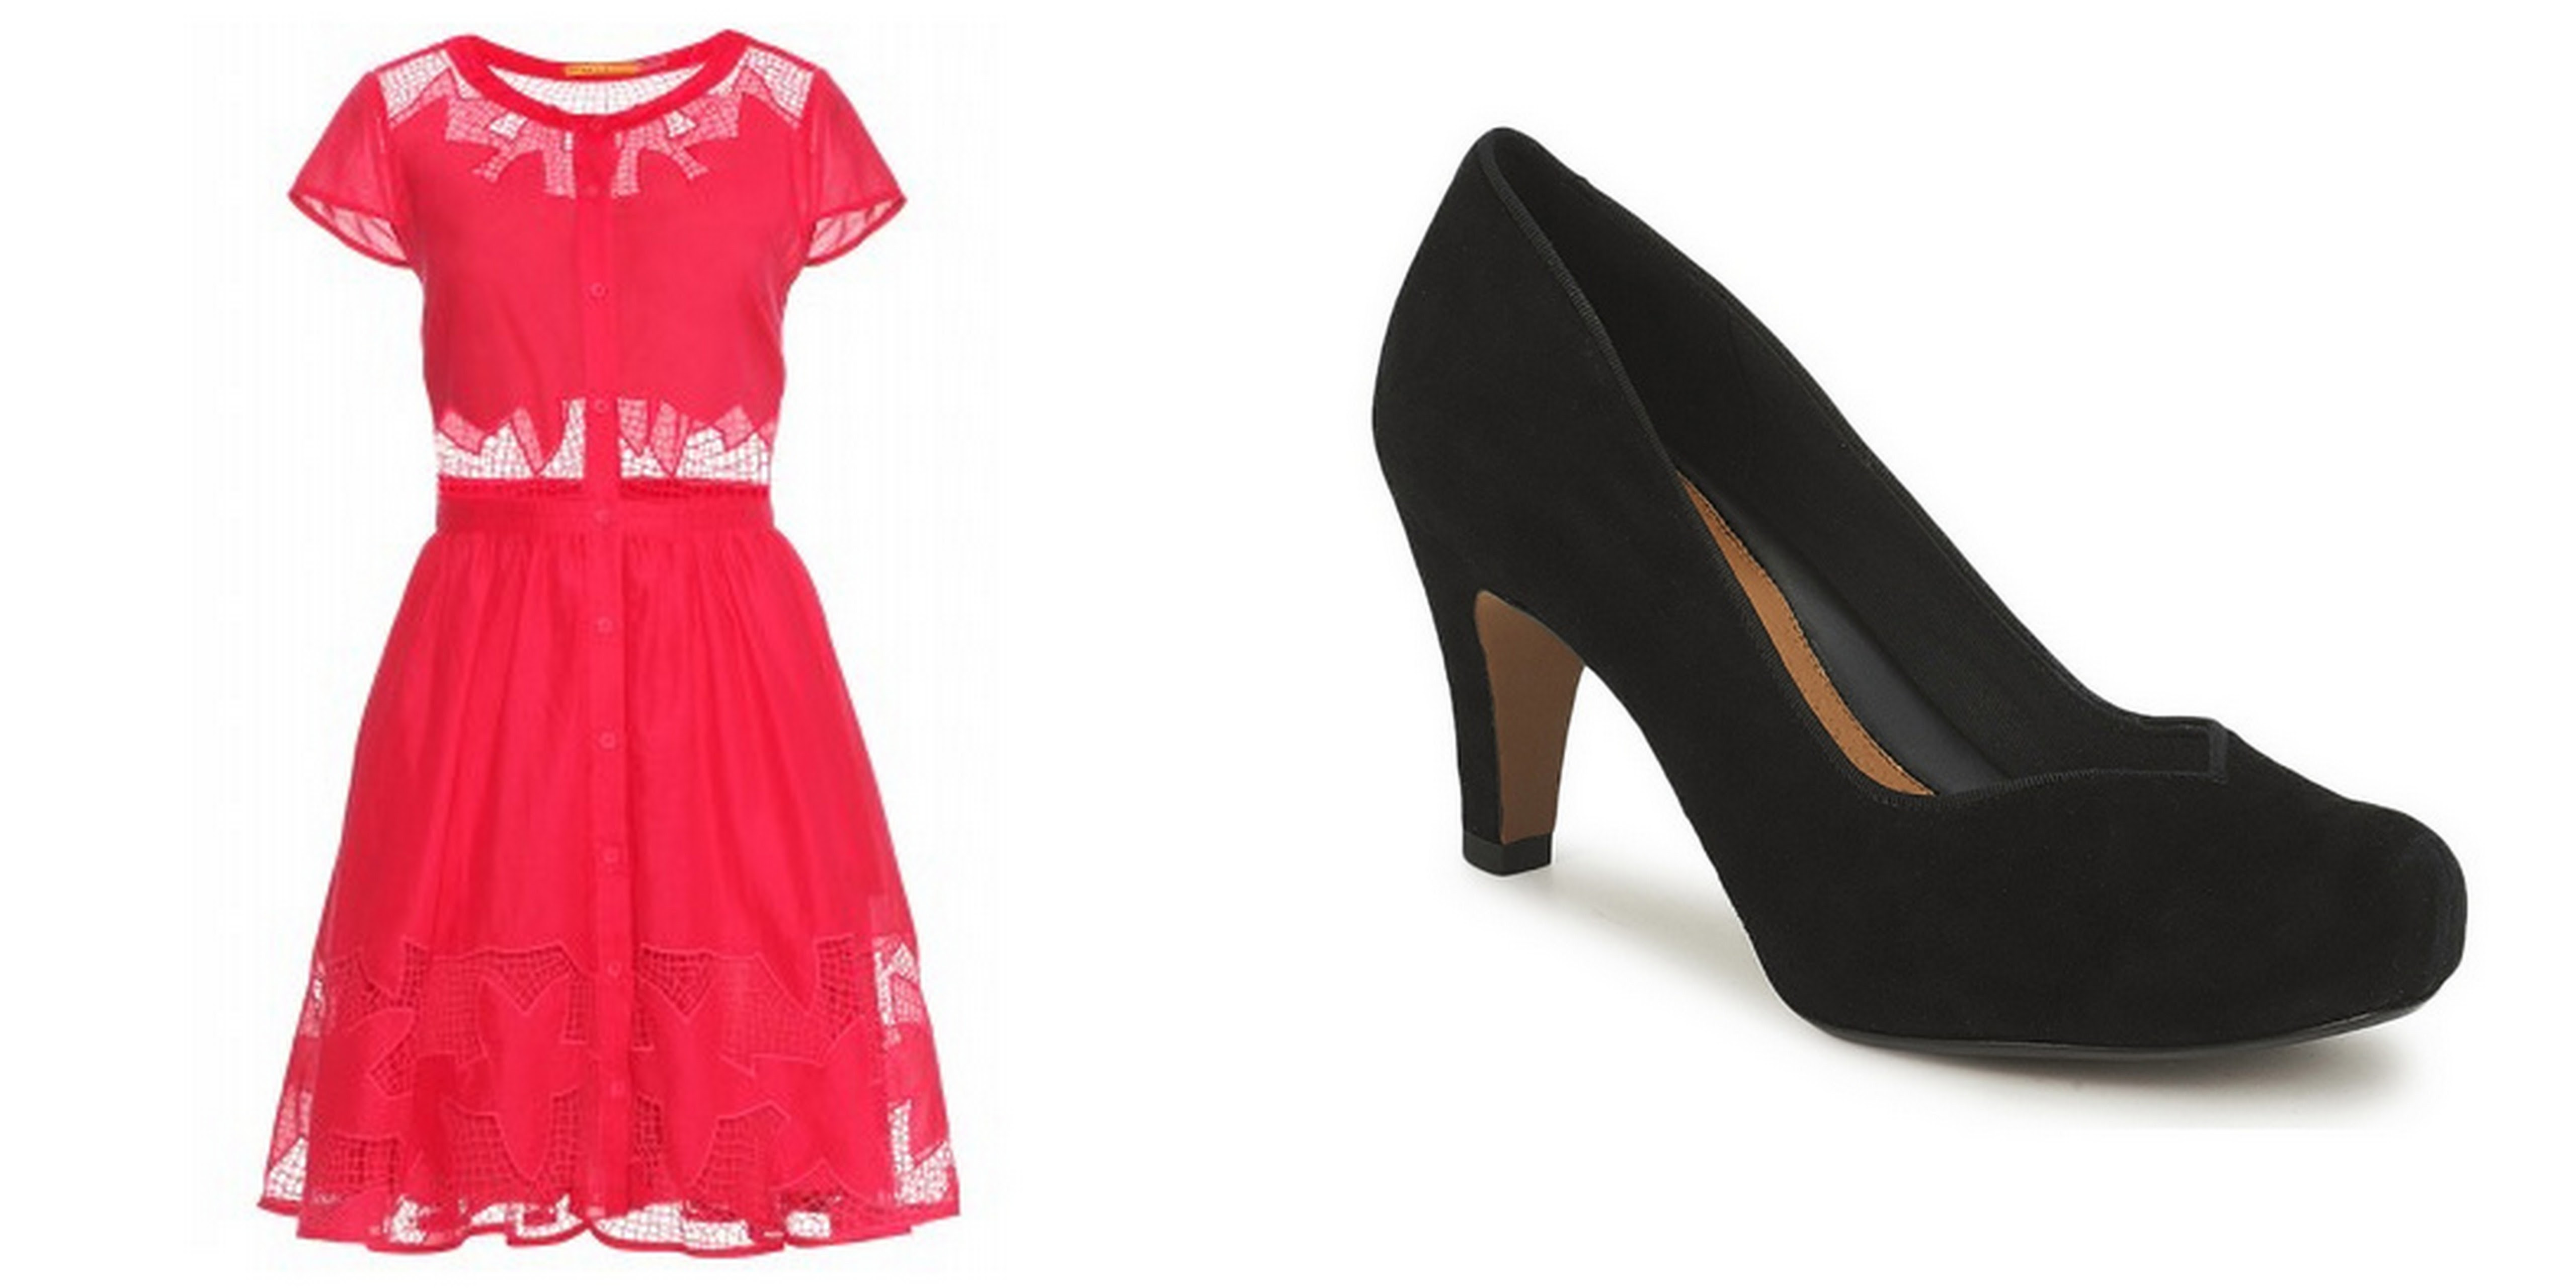 Alice and Oliva Dress and Clarks Shoes